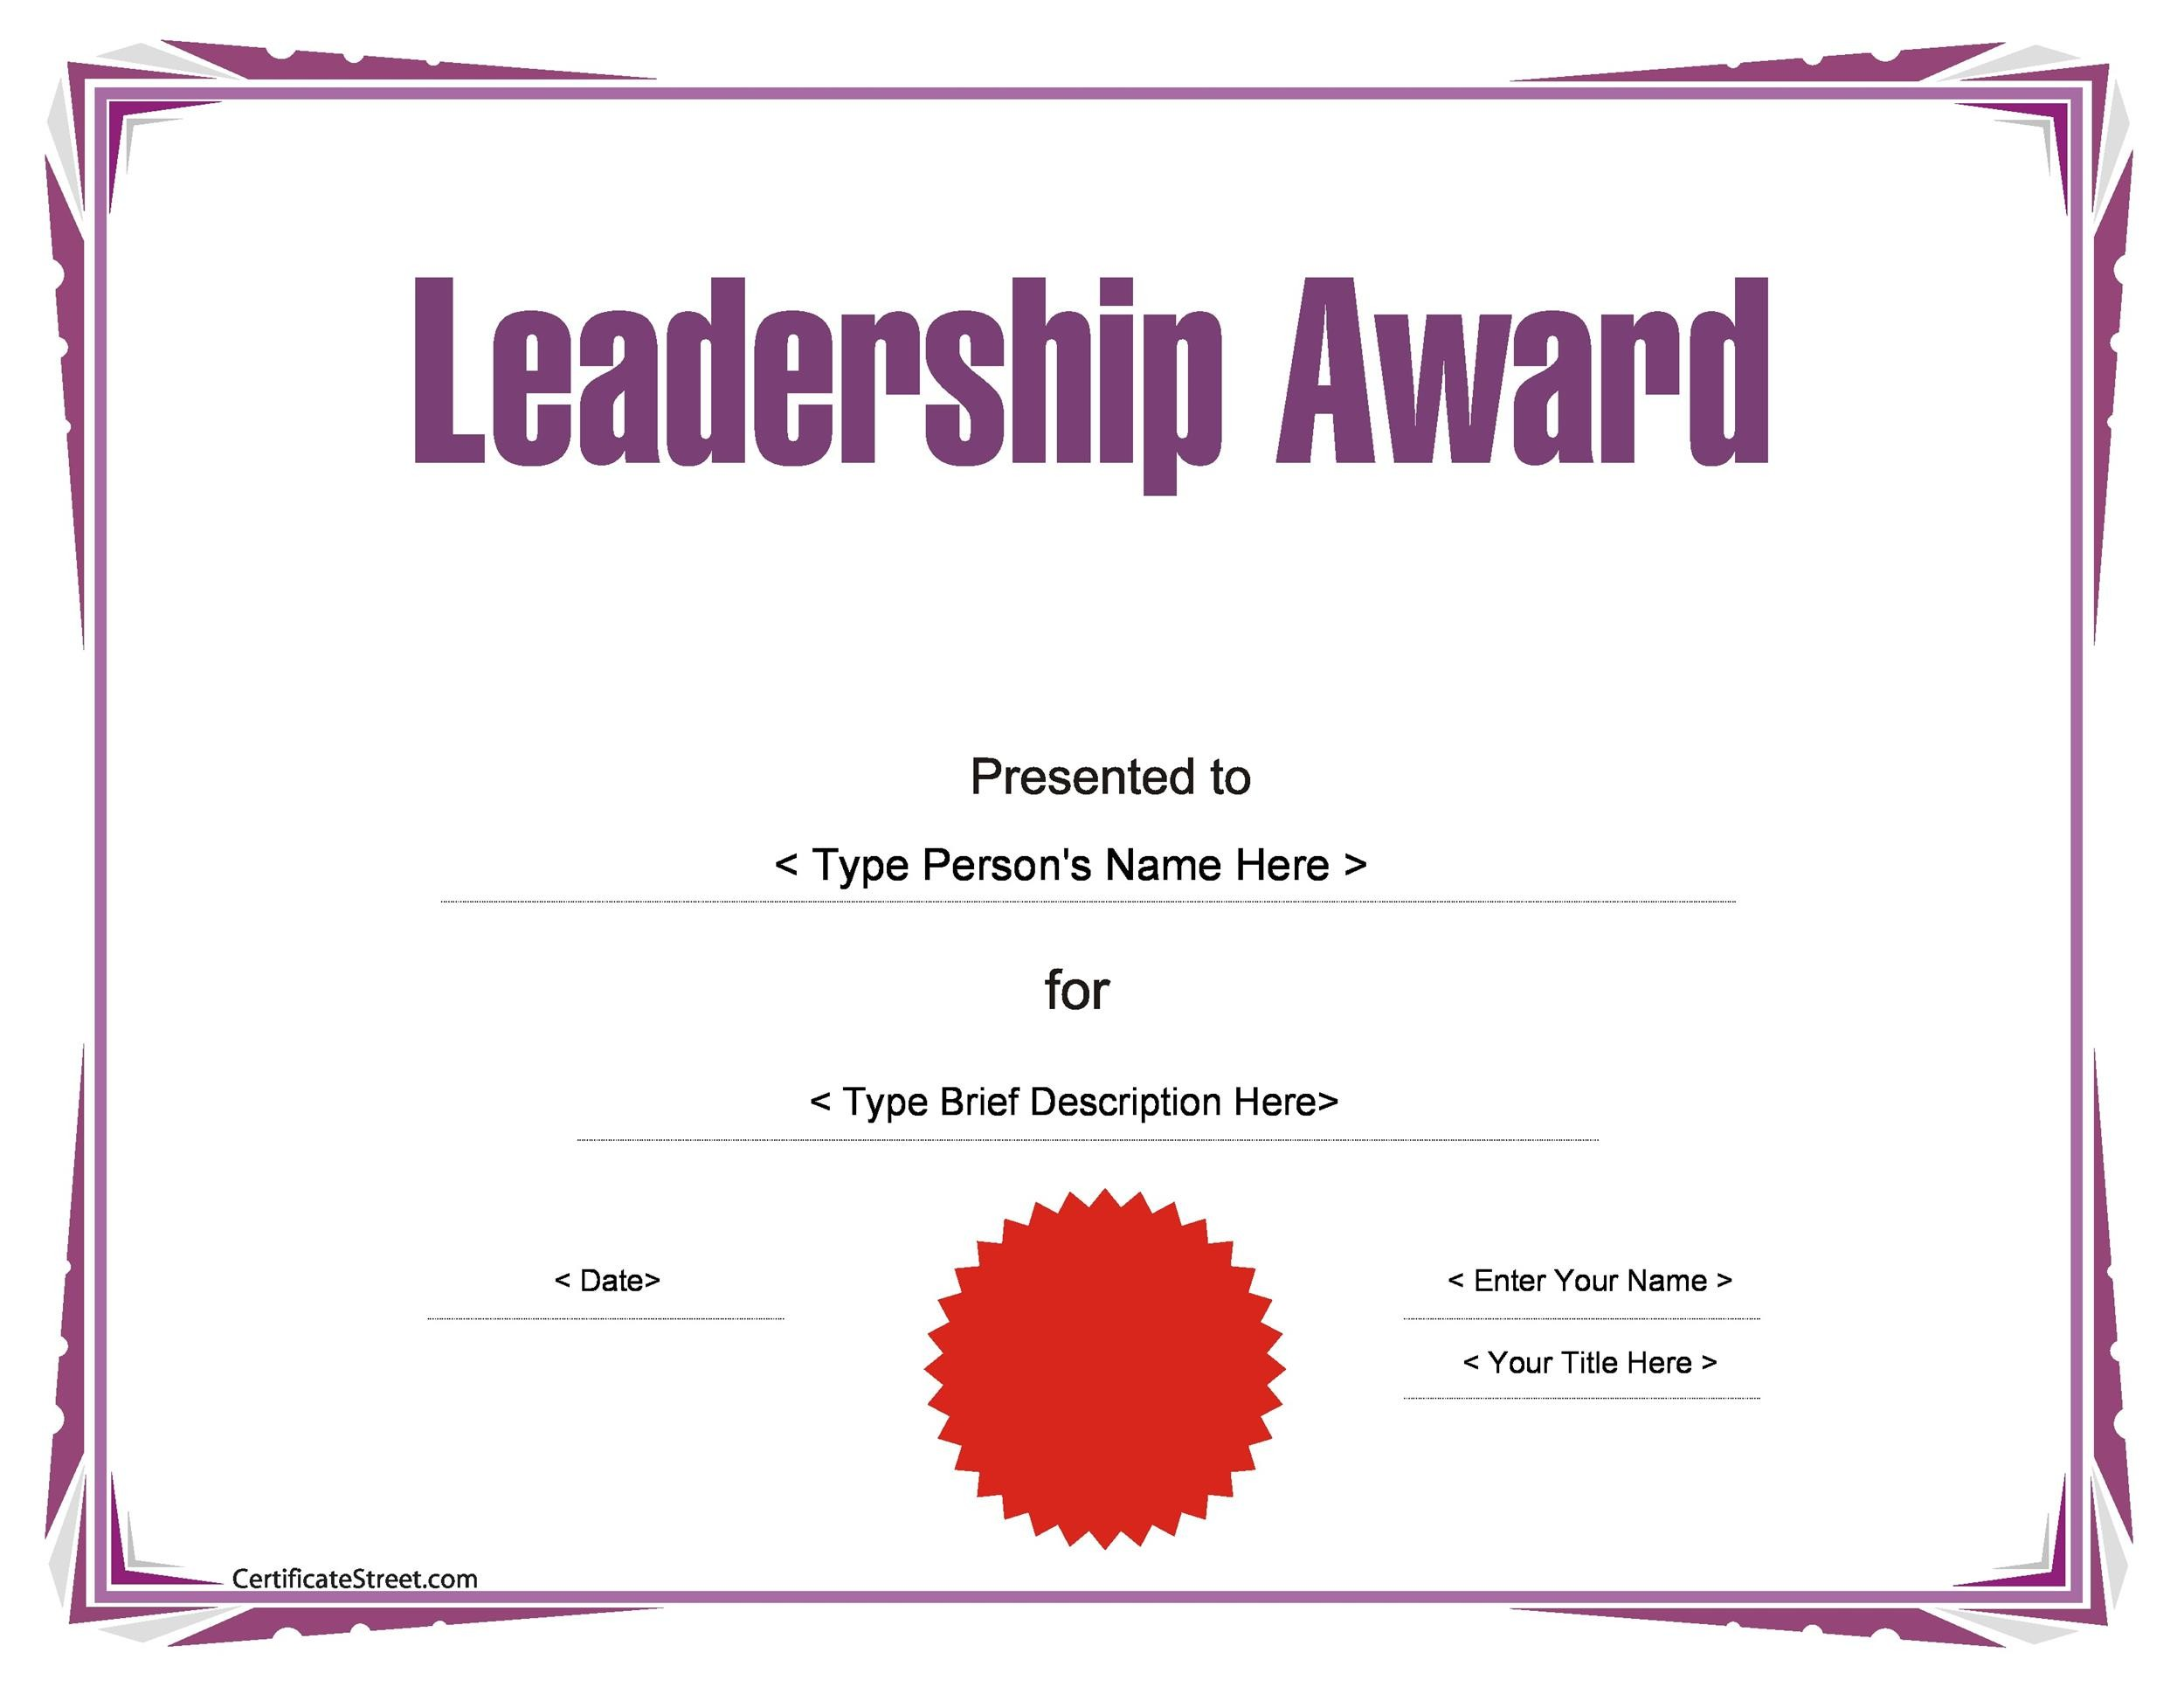 50 Amazing Award Certificate Templates Template Lab – Examples of Award Certificates